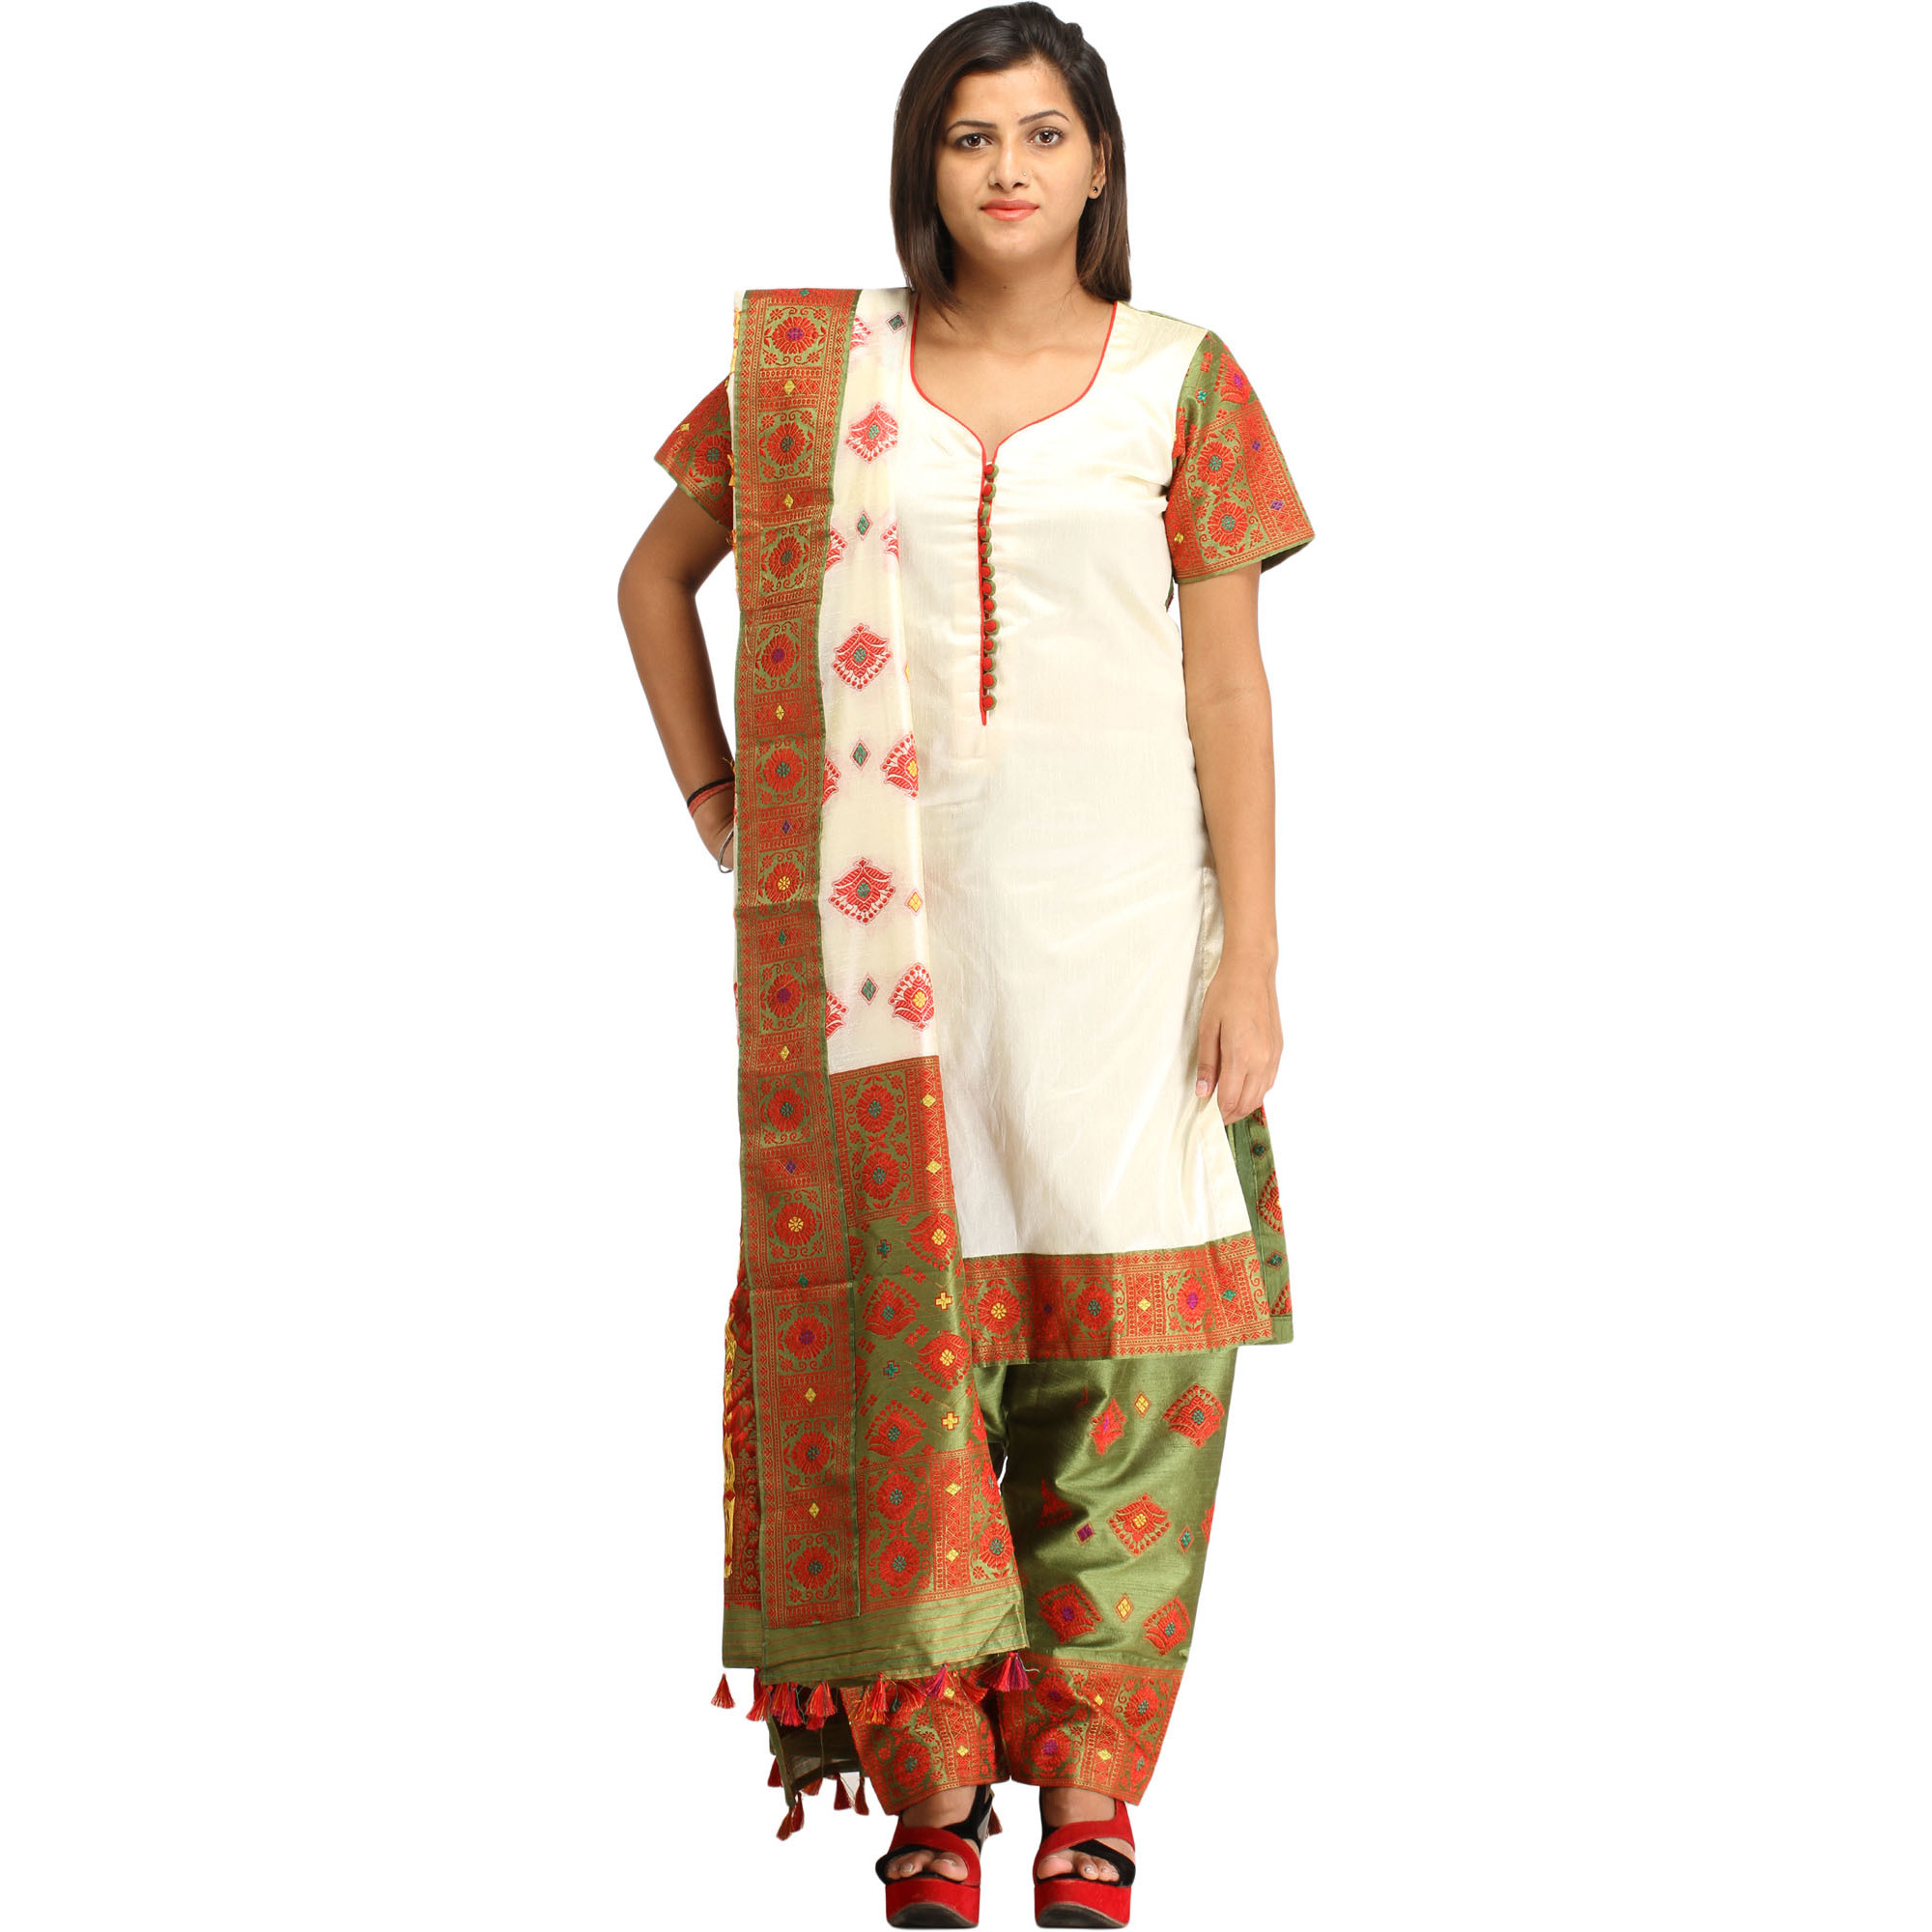 Ivory and Green Salwar Kameez Suit from Assam with Woven Floral Motifs